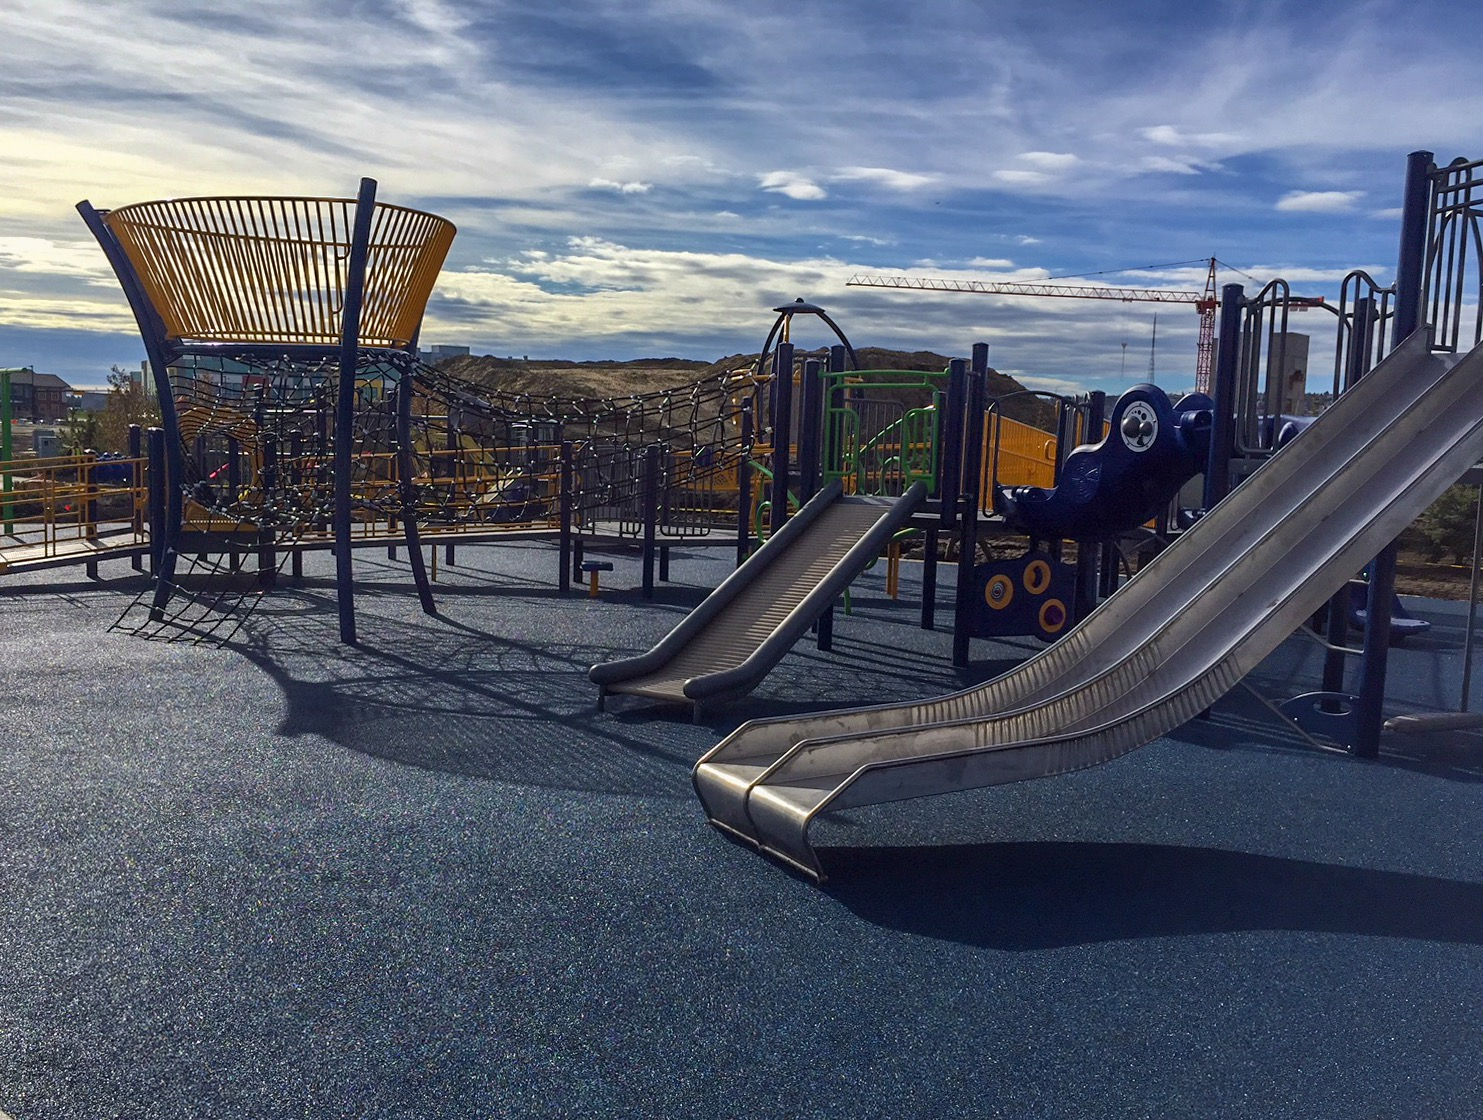 How to Find Funding For Your New Community Playground